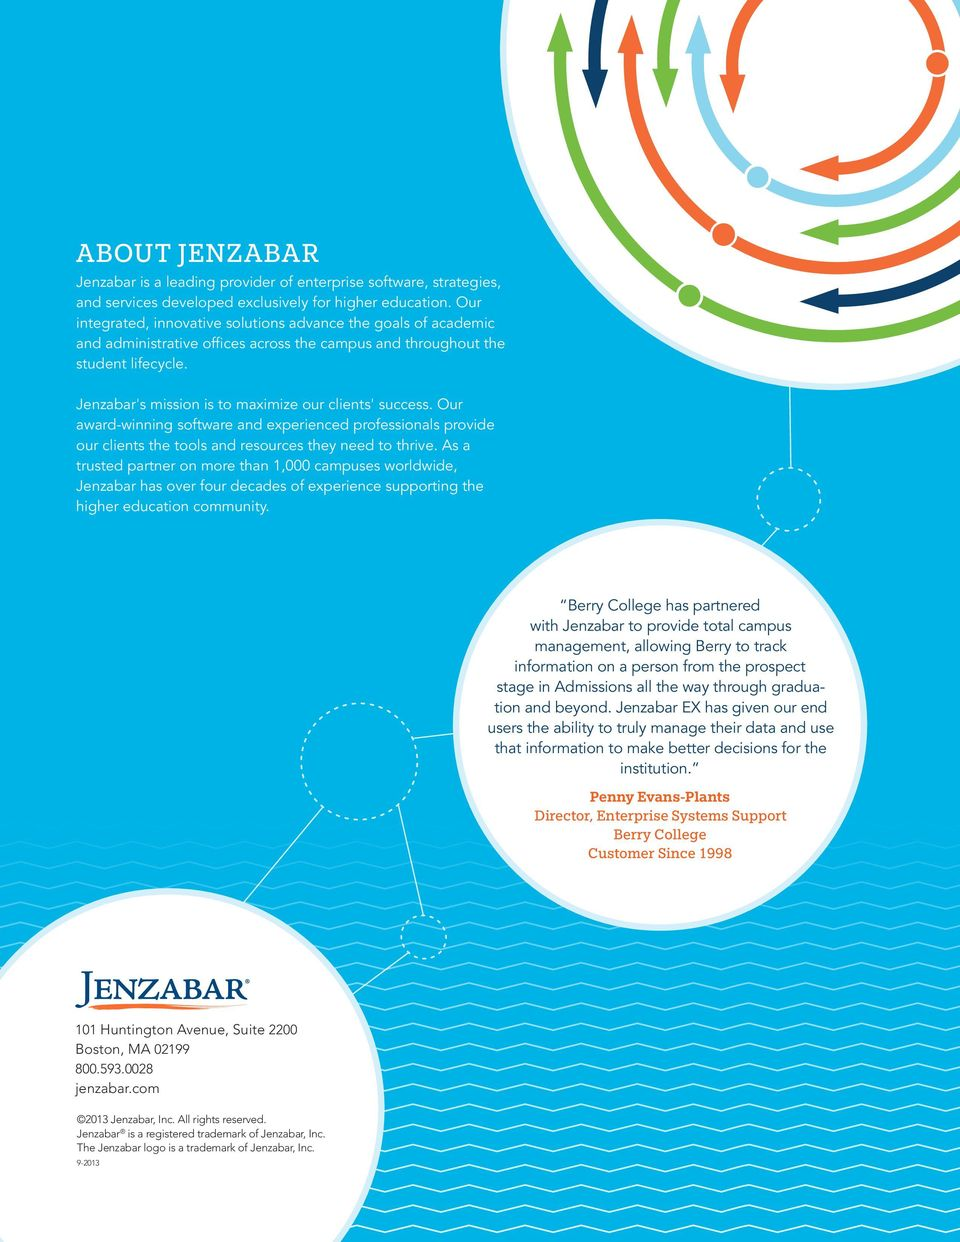 Jenzabar's mission is to maximize our clients' success. Our award-winning software and experienced professionals provide our clients the tools and resources they need to thrive.